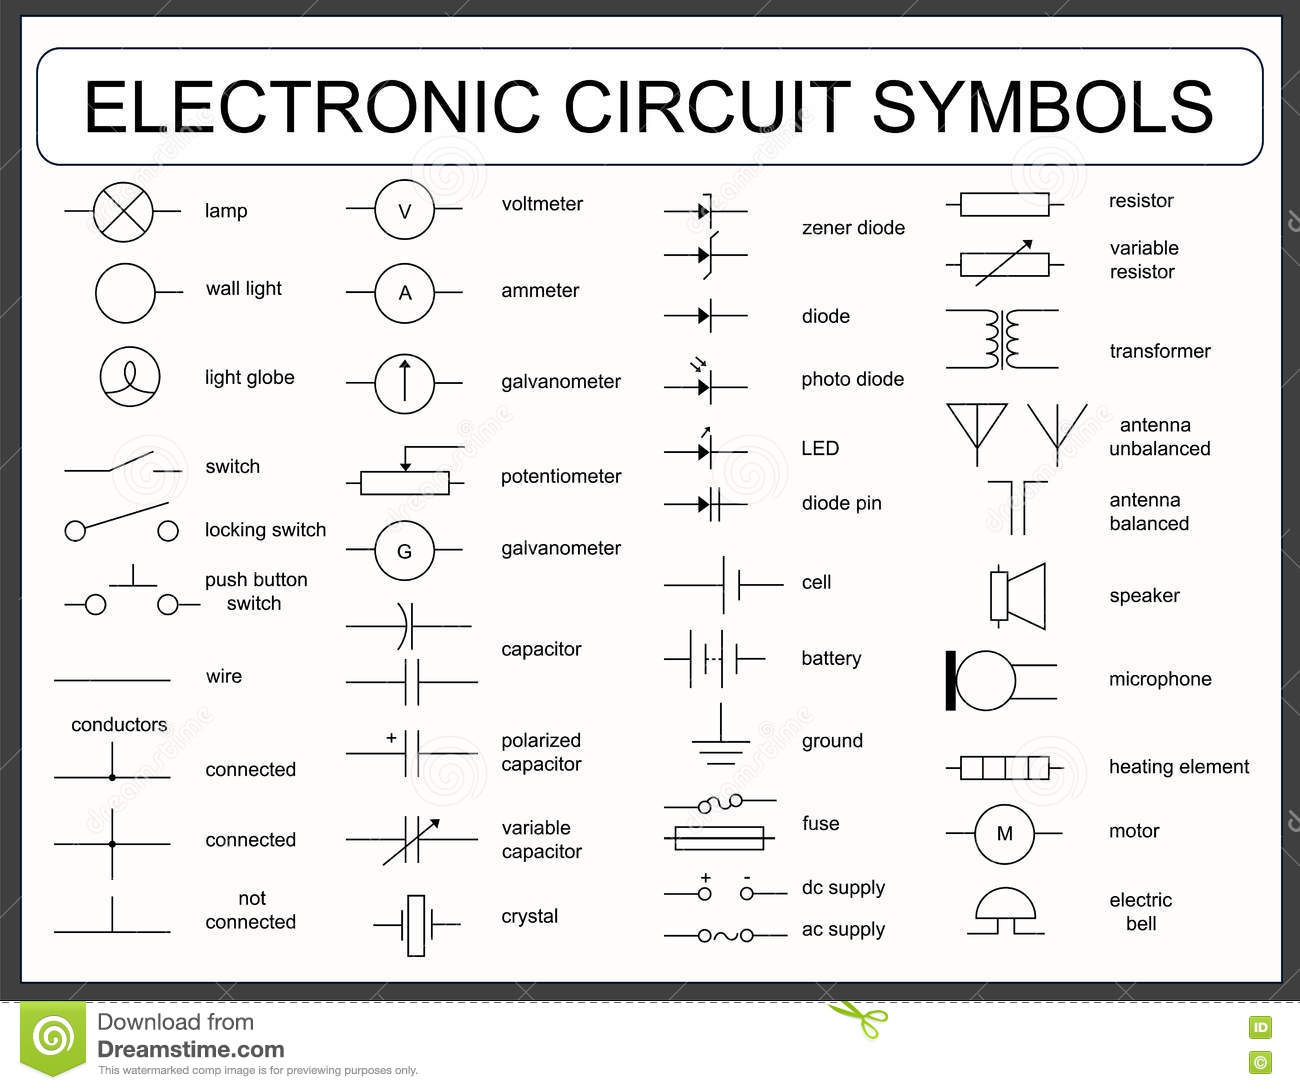 Schematic Symbols For Circuits - Wiring Diagram Gol on